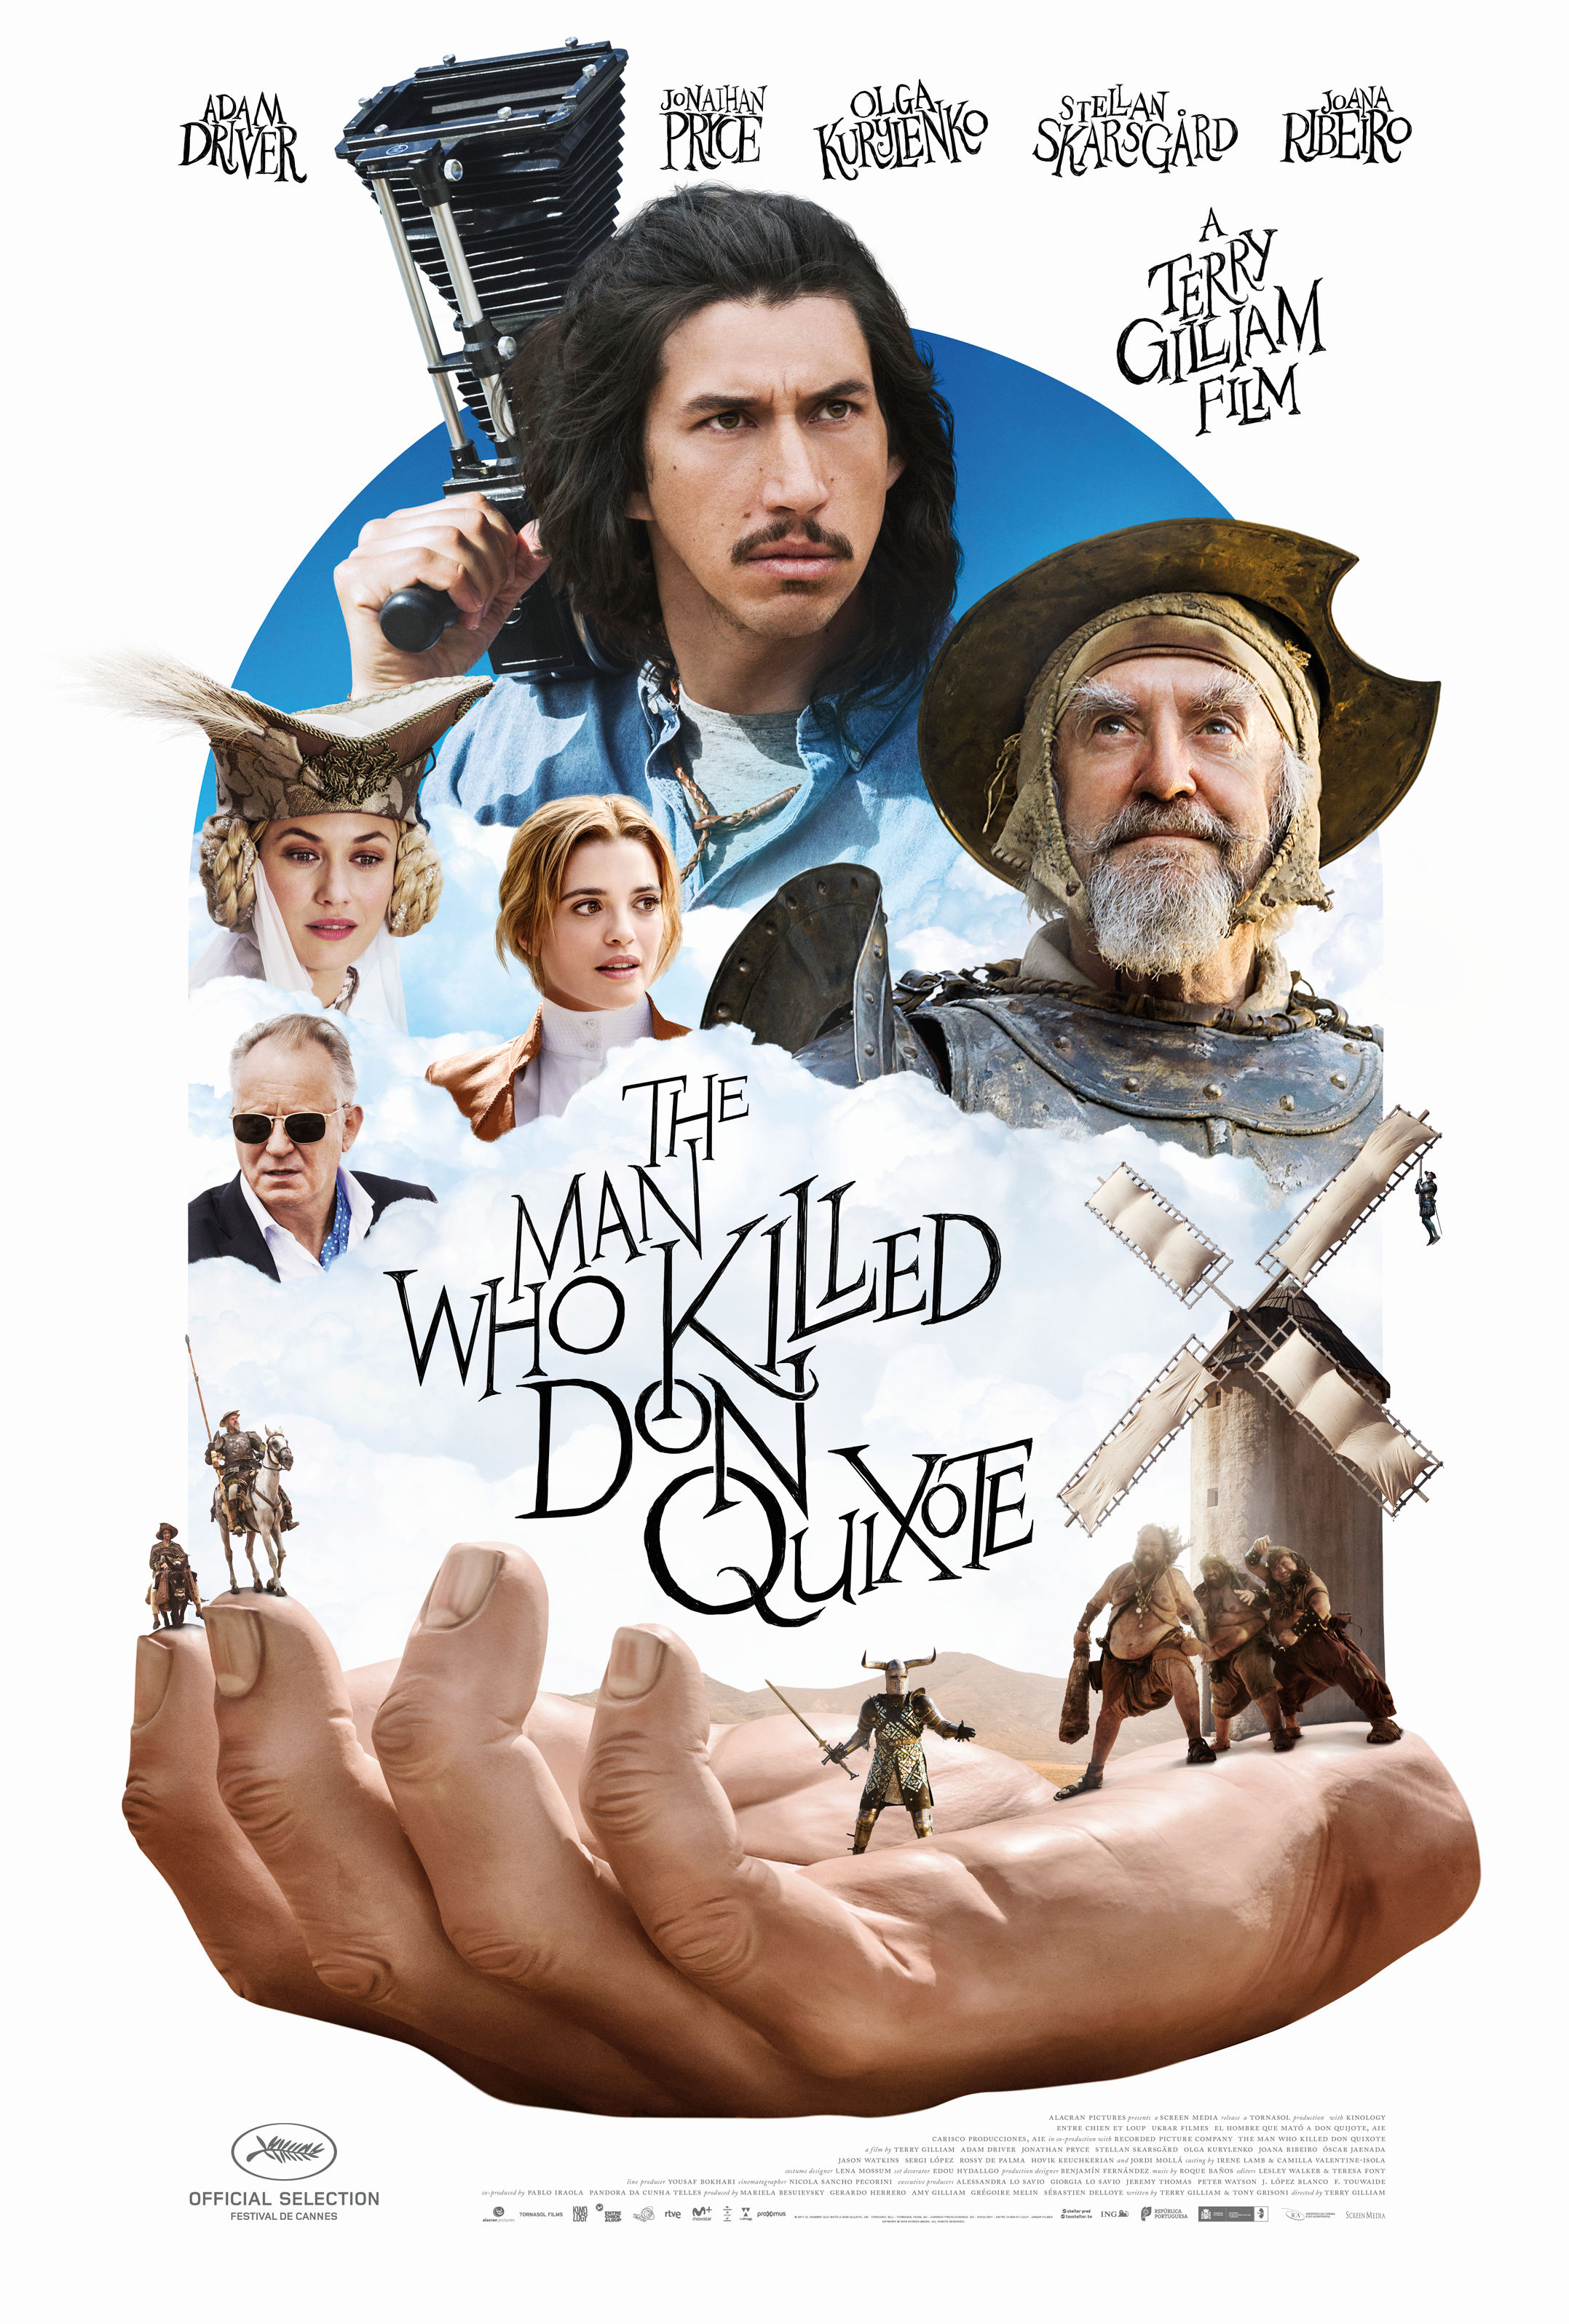 The Man Who Killed Don Quixote (2018) - Directed By: Terry GilliamStarring: Adam Driver, Jonathon Pryce, Joana Ribeiro, Stellan Skarsgard, Olga KurylenkoRated: RRun Time: 2h 12mTMM Score: 5 StarsStrengths: Acting, Production Design, Grand ConceptWeakness: Length